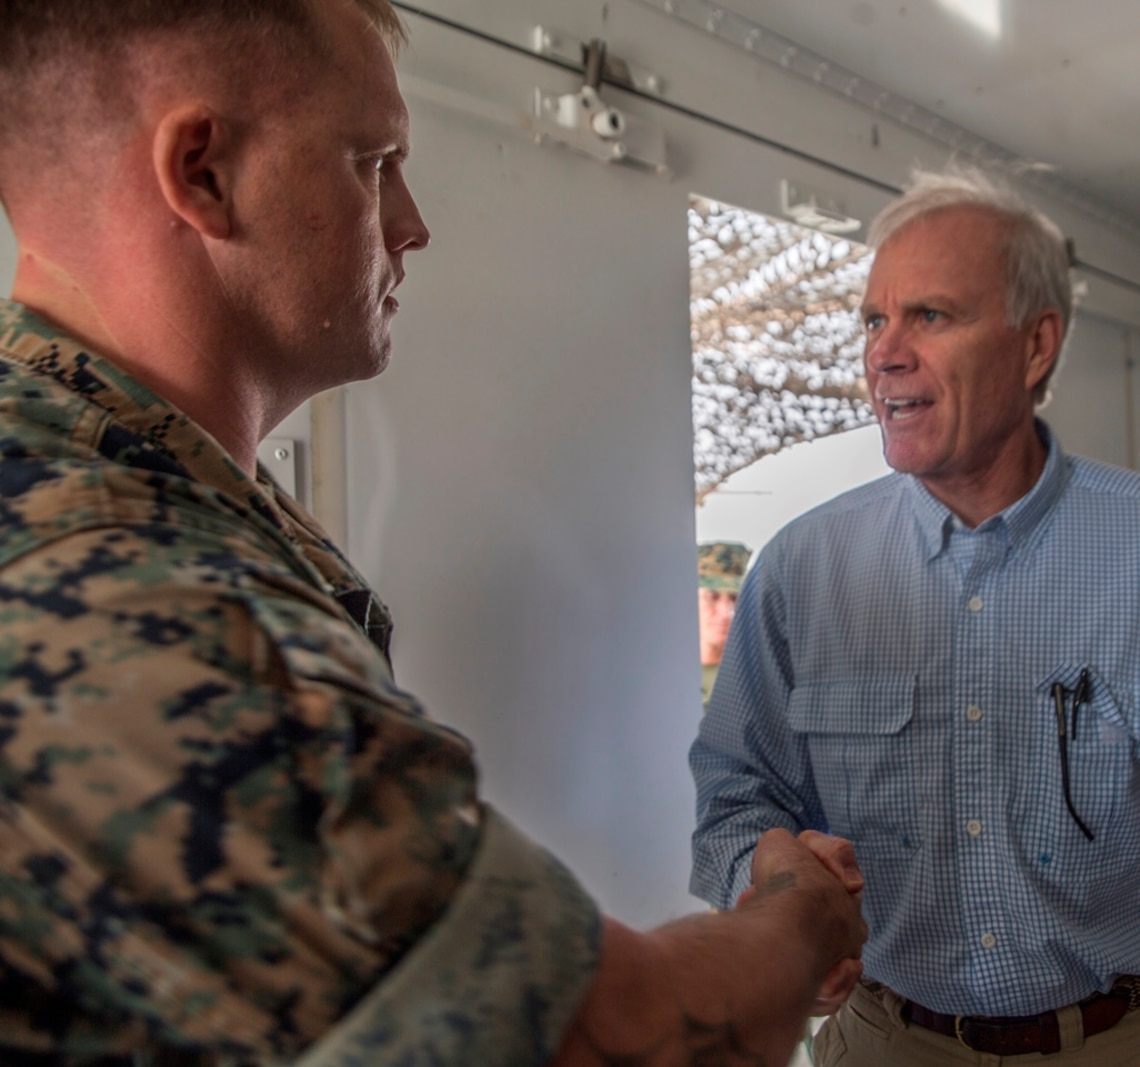 U.S. Marine Staff Sgt. Wesley Jones, an optics technician with 1st Maintenance Battalion, Combat Logistics Regiment 15, 1st Marine Logistics Group, meets with Richard Spencer, the Secretary of the Navy, on Camp Pendleton, Calif., August 30, 2017. Spencer toured 1st Maintenance Battalion and talked to Marines about their capabilities and accomplishments. (U.S. Marine Corps photo by Lance Cpl. Adam Dublinske)